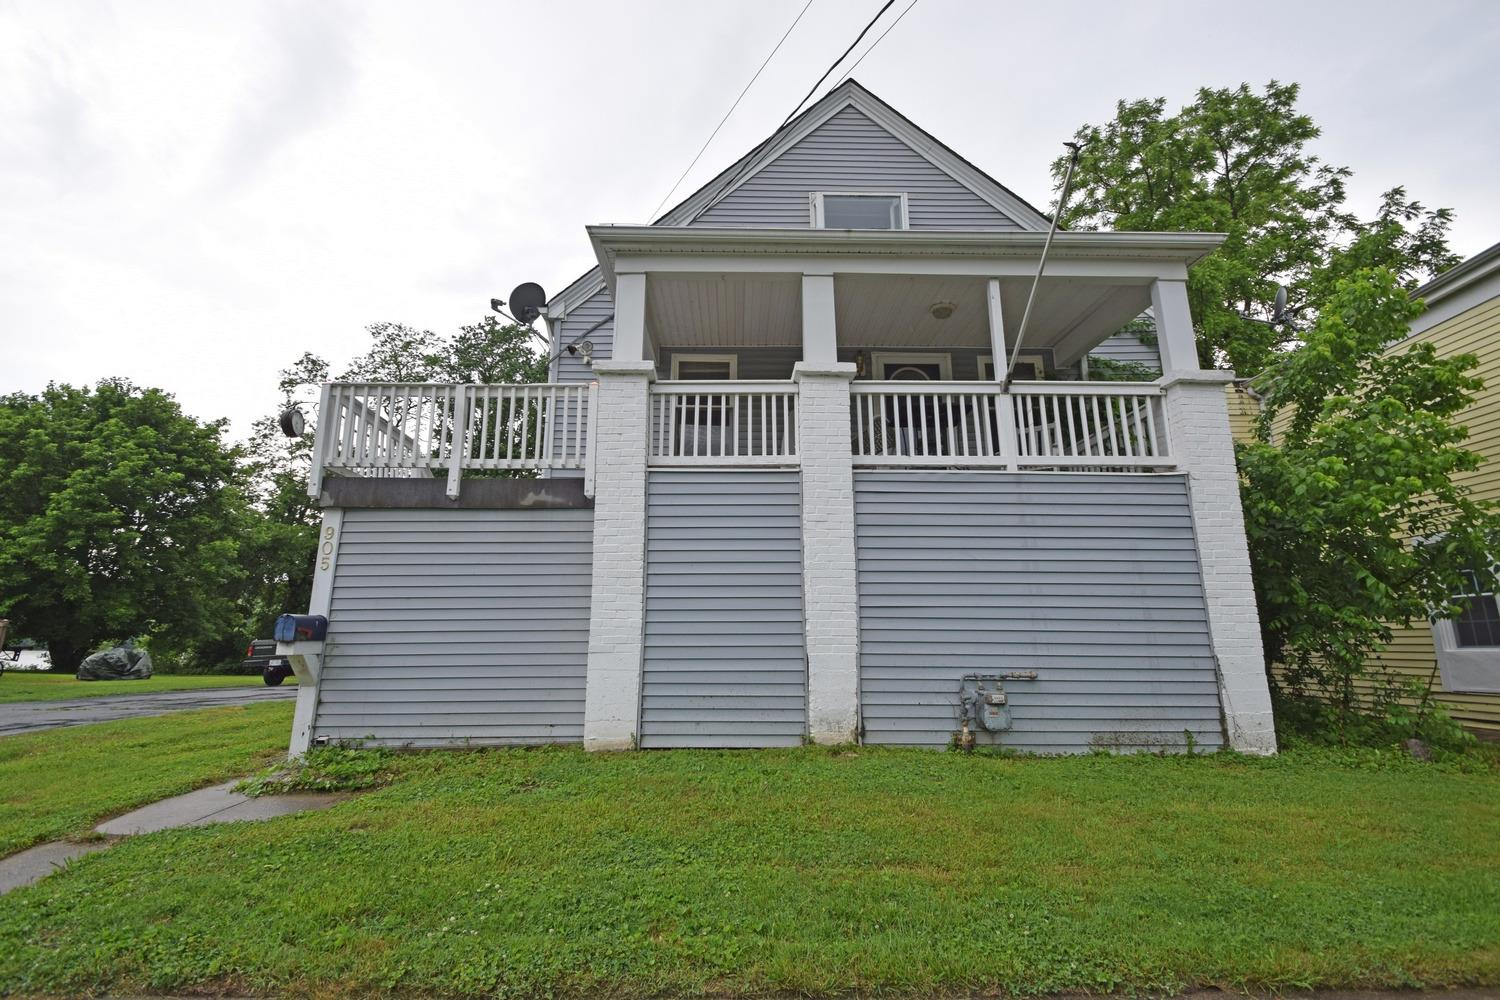 905 Front St New Richmond Oh 45157 Listing Details Mls